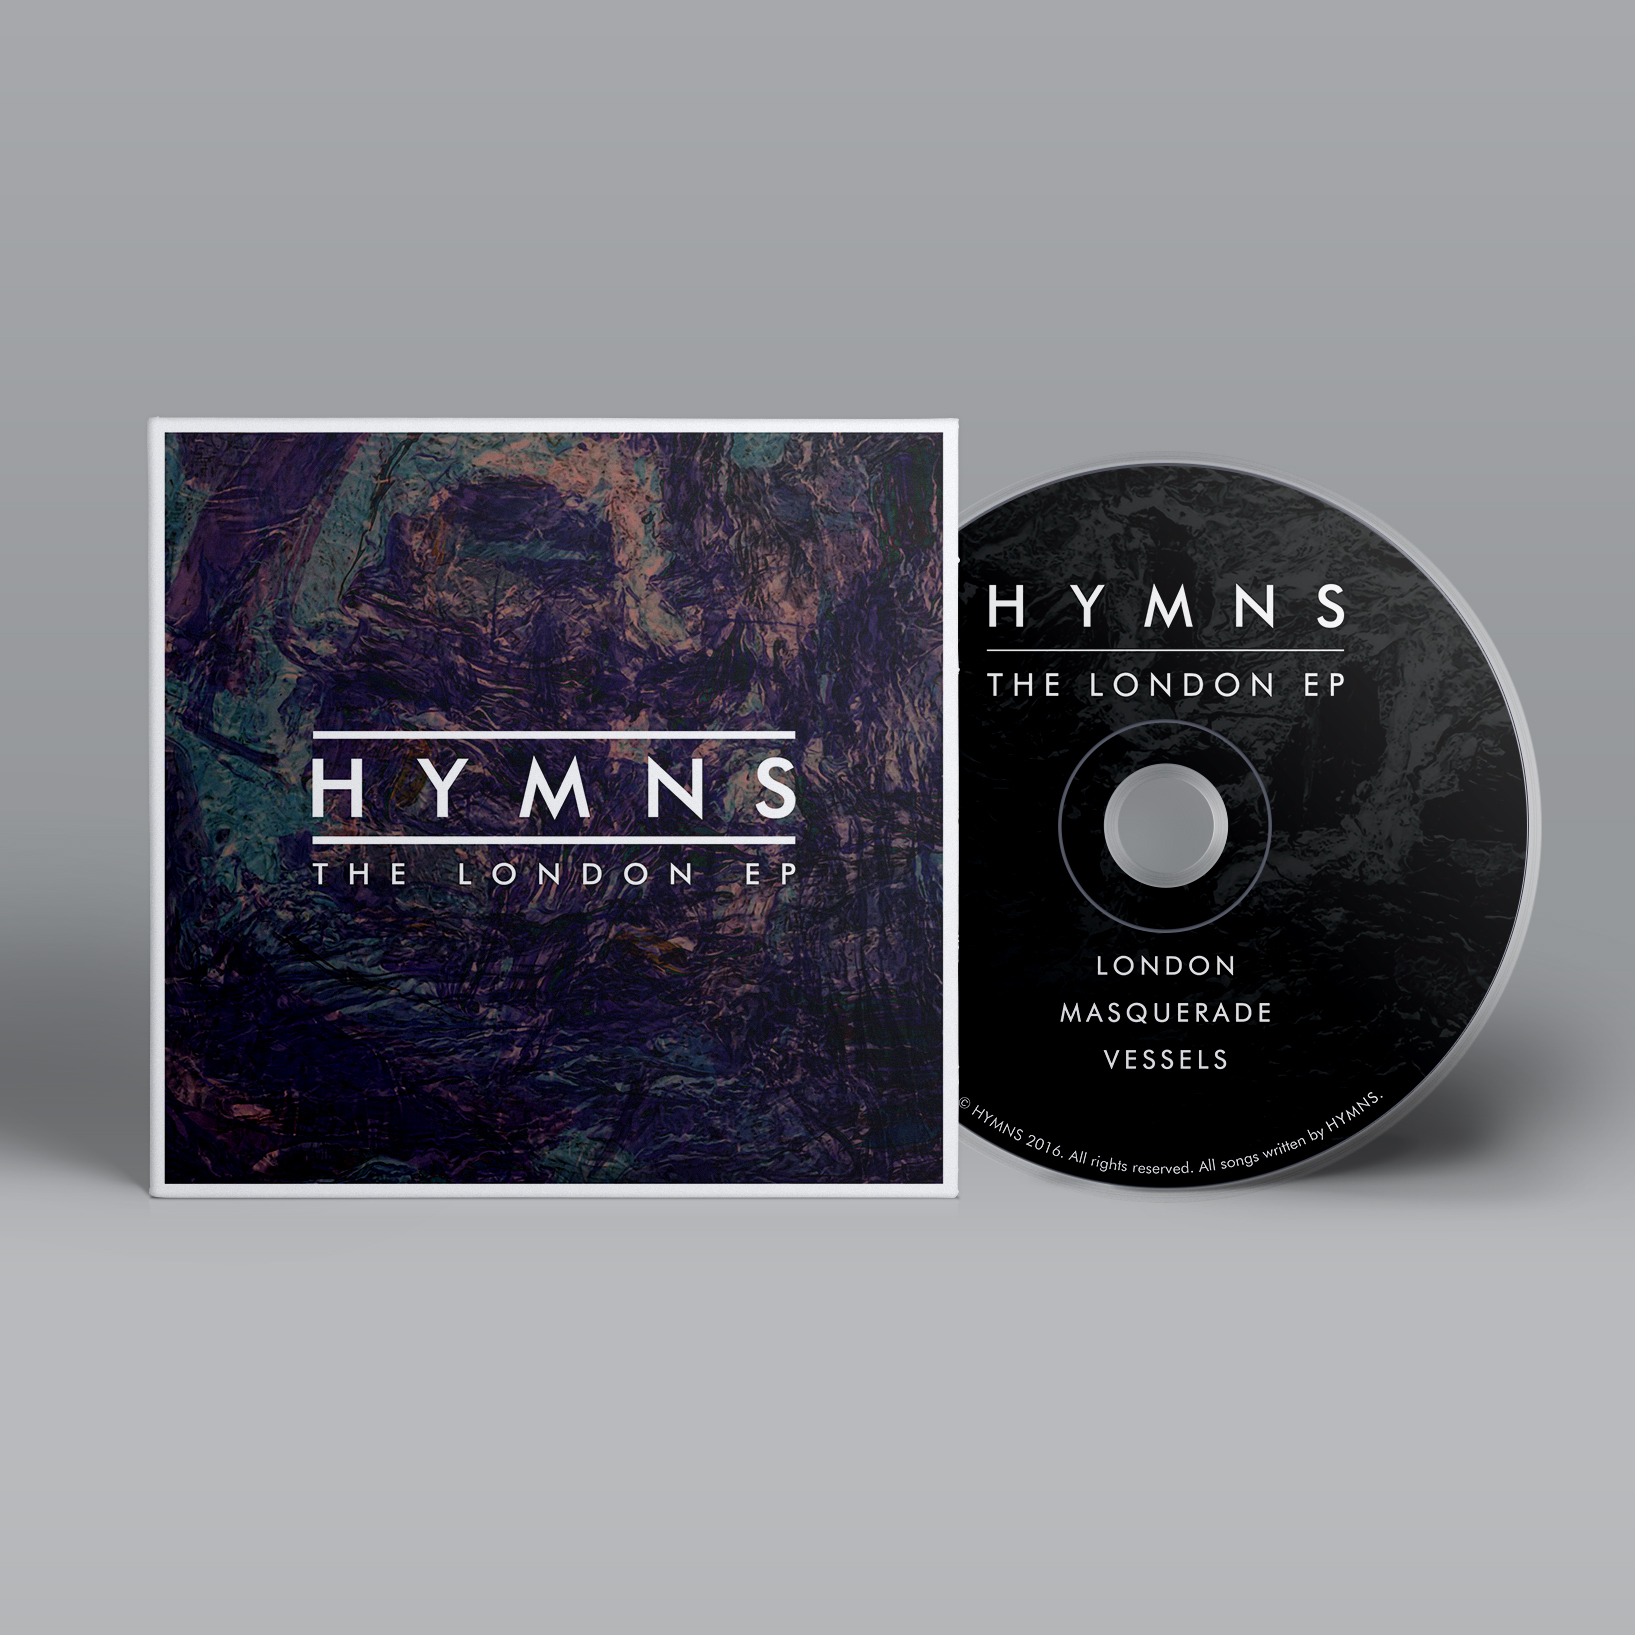 London EP CD - HYMNS